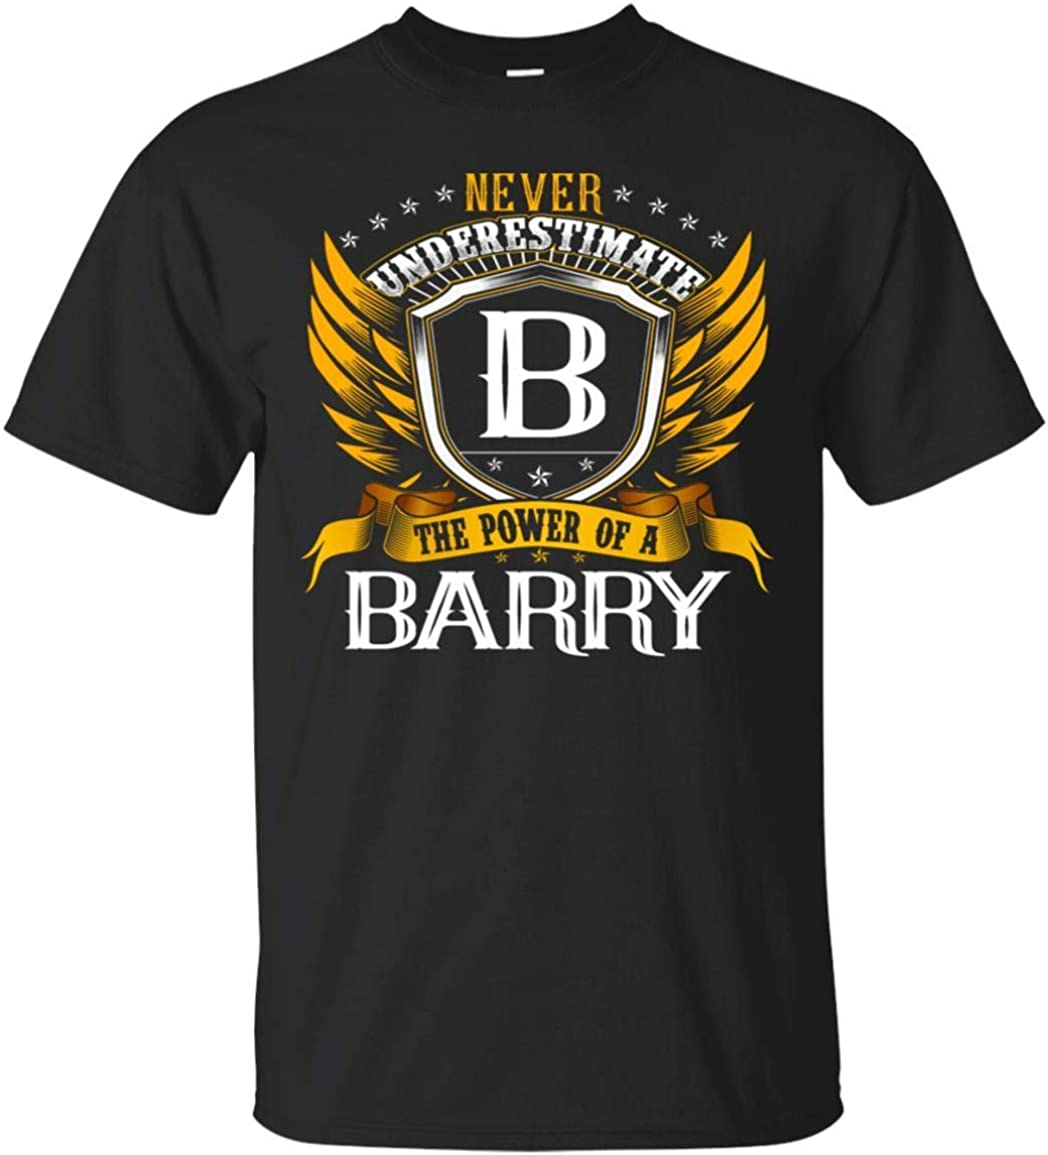 Never Underestimate The Power Of A Barry Shirt - Tshirt